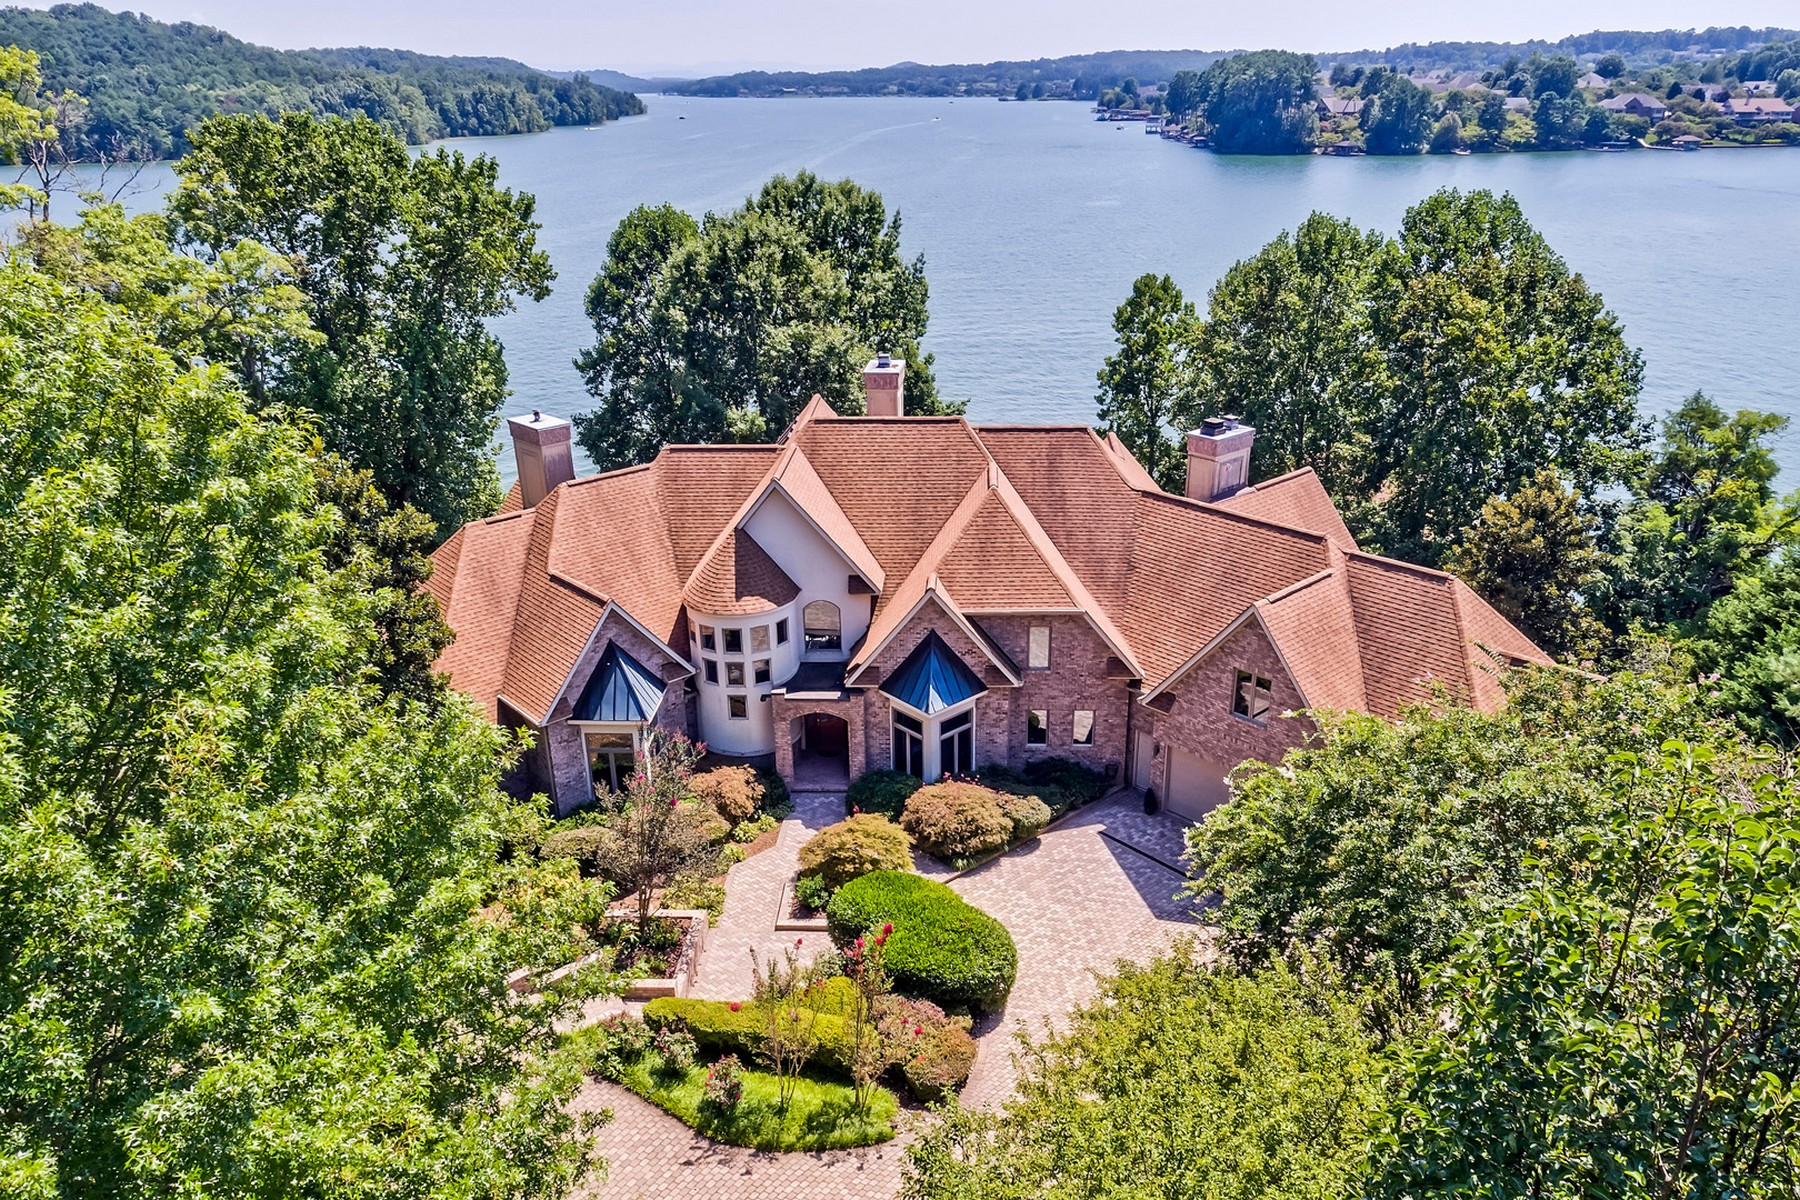 Casa Unifamiliar por un Venta en Lakefront Home With Majestic Views 234 Tecumseh Way Loudon, Tennessee 37774 Estados Unidos